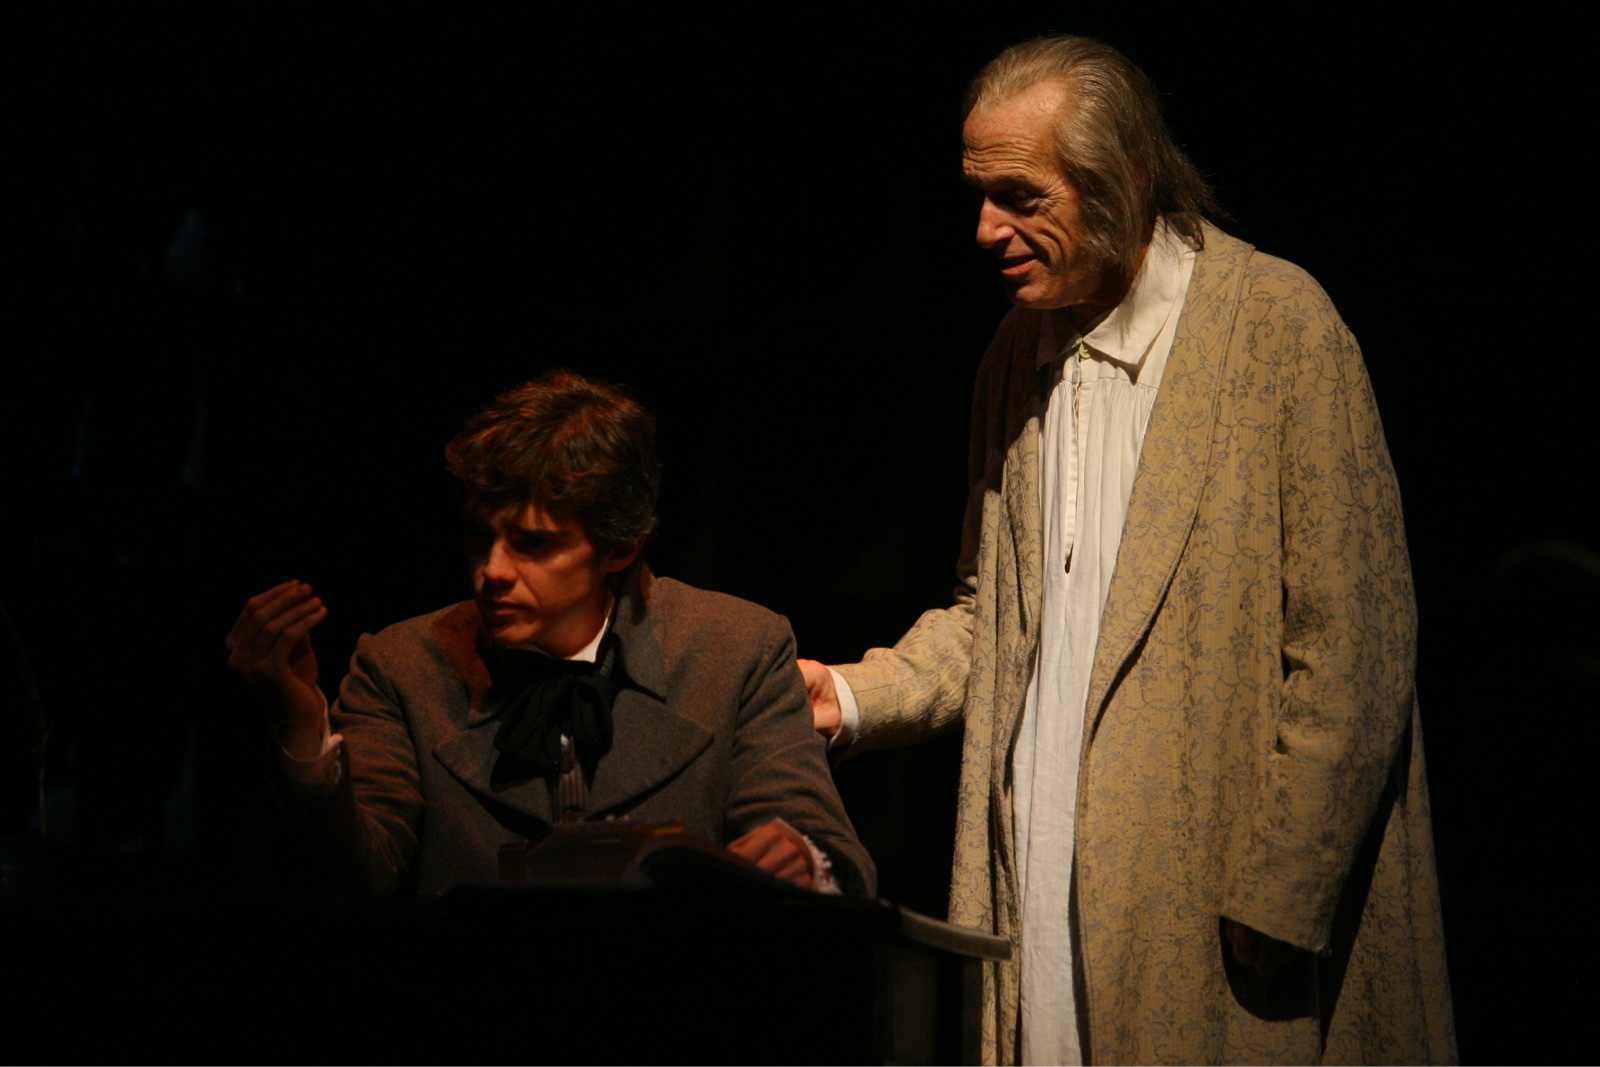 Jarrod Zimmerman (Young Scrooge) with Larry Yando (Ebenezer Scrooge) in A Christmas Carol